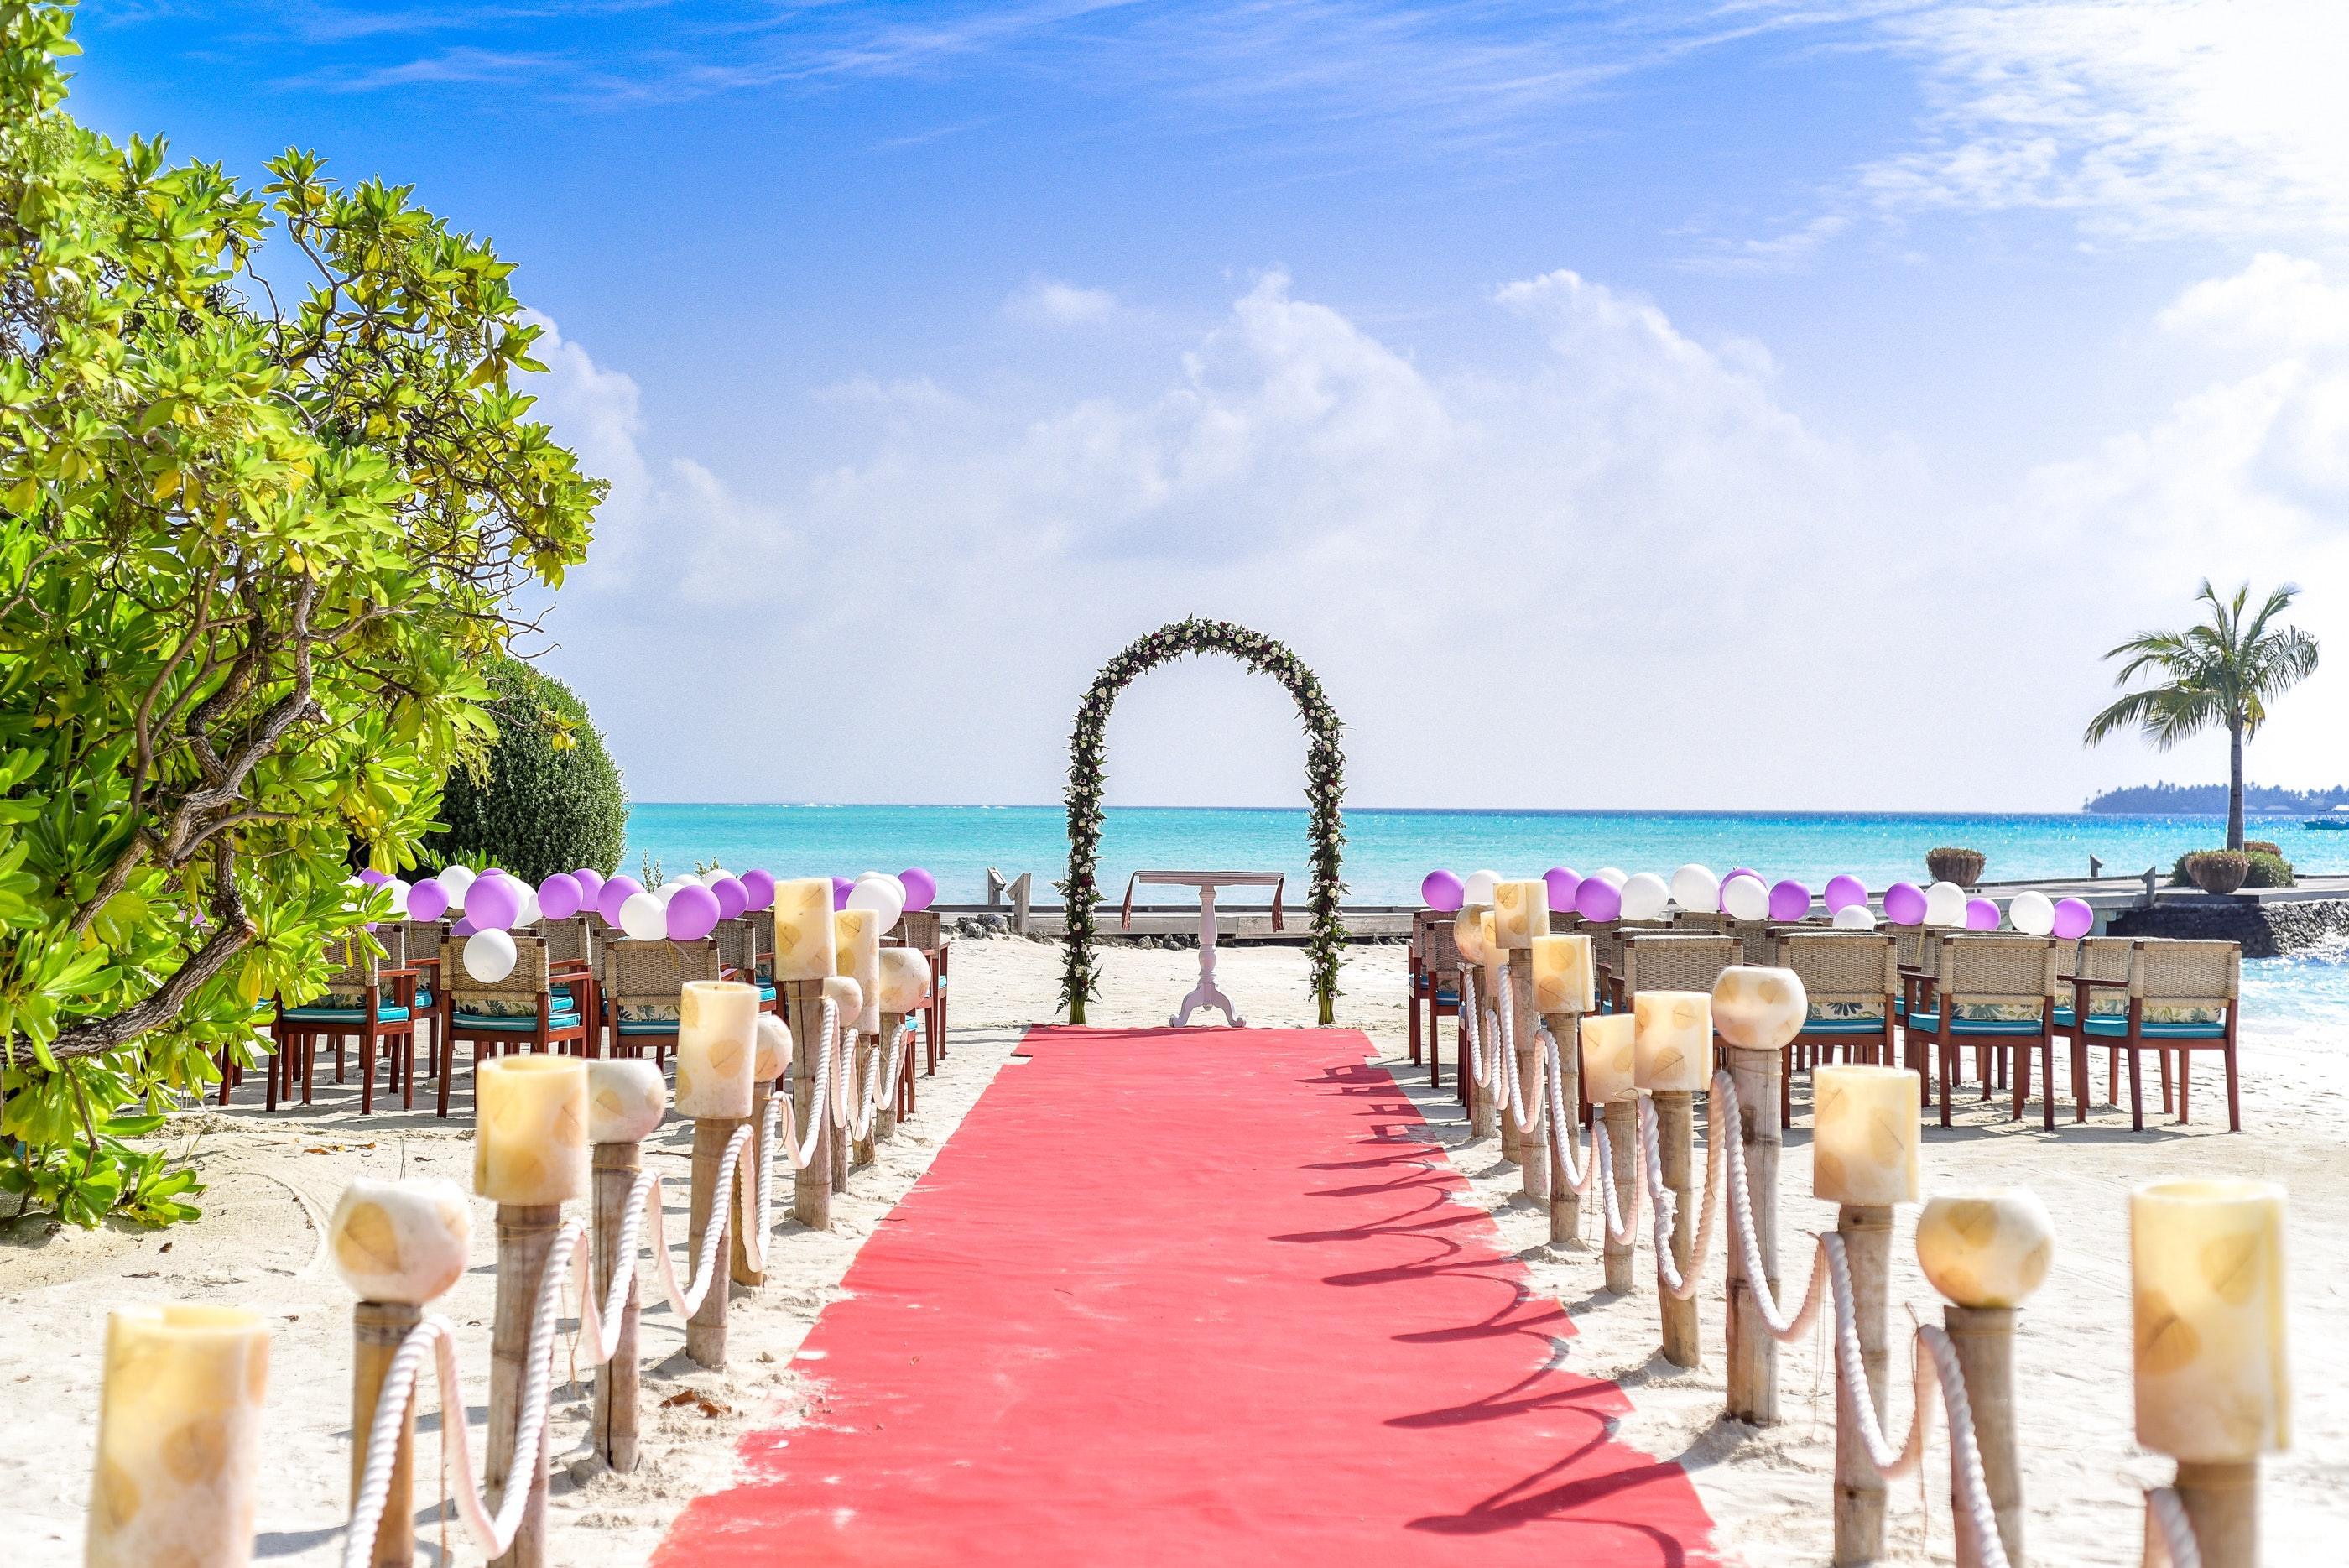 Beach Wedding Event Under White Clouds and Clear Sky during Daytime, Balloons, Sand, Wedding arch, Wedding, HQ Photo